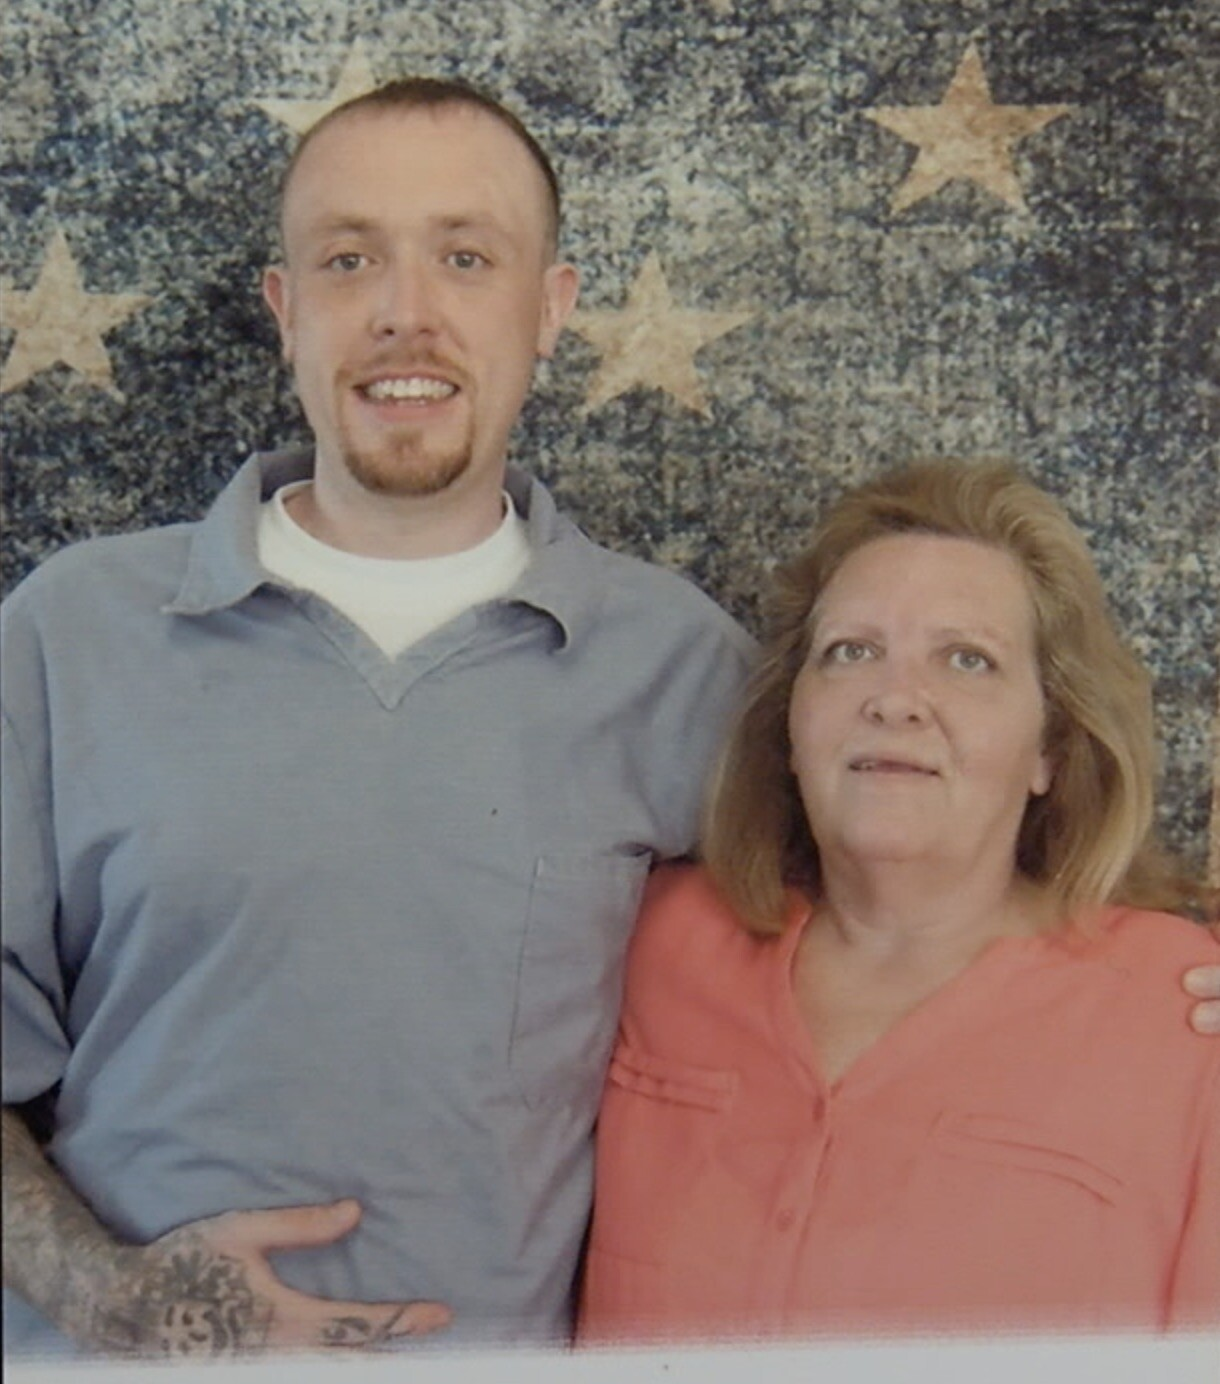 Kevin Thornton and his mother, Jacqueline Casey, when she visited him in prison.